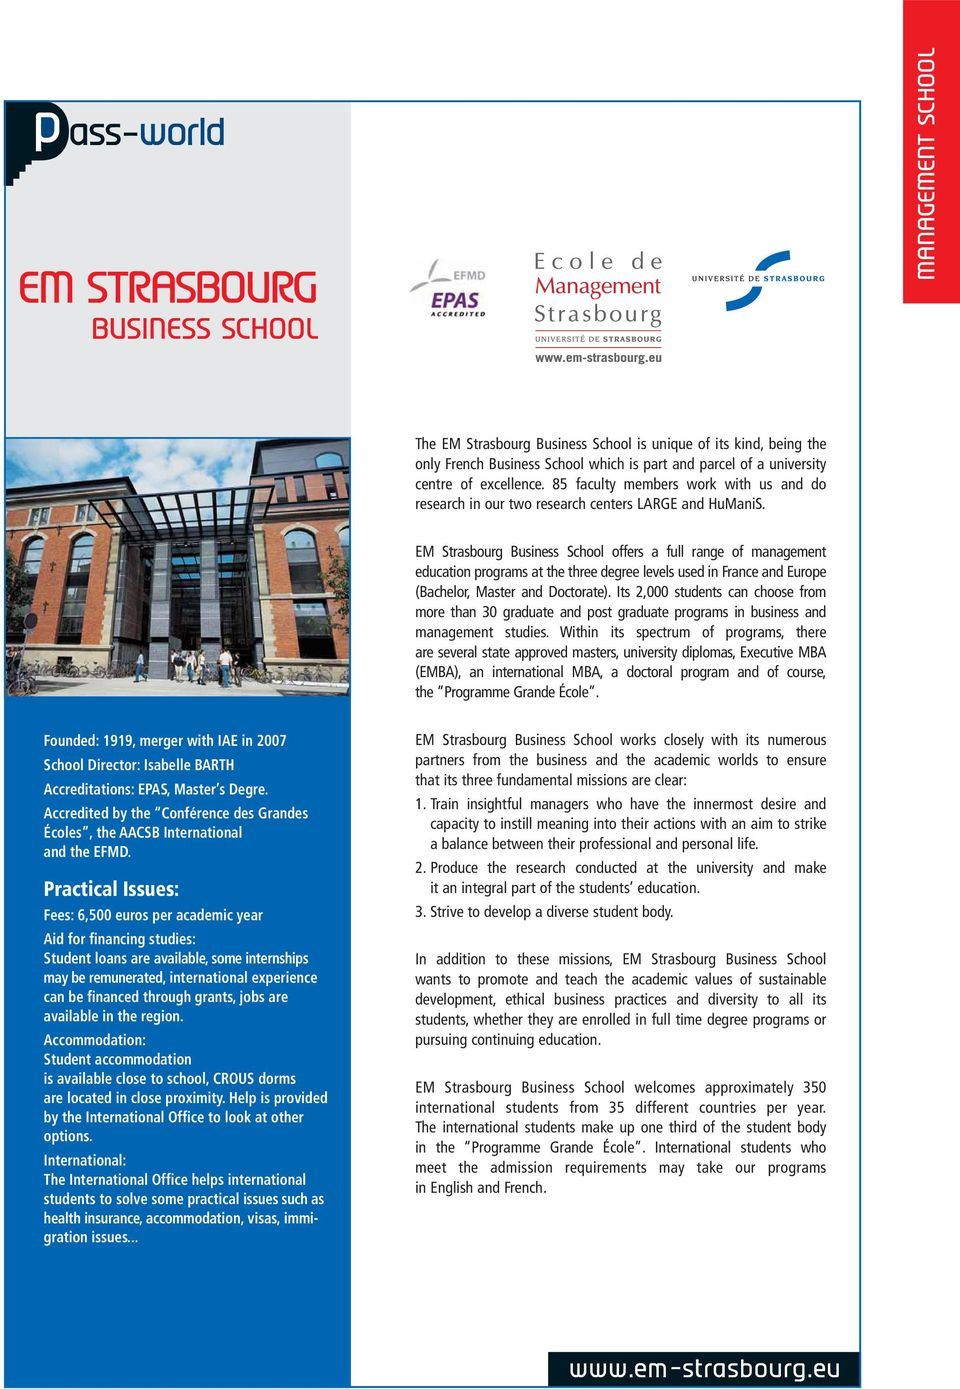 EM Strasbourg Business School offers a full range of management education programs at the three degree levels used in France and Europe (Bachelor, Master and Doctorate).